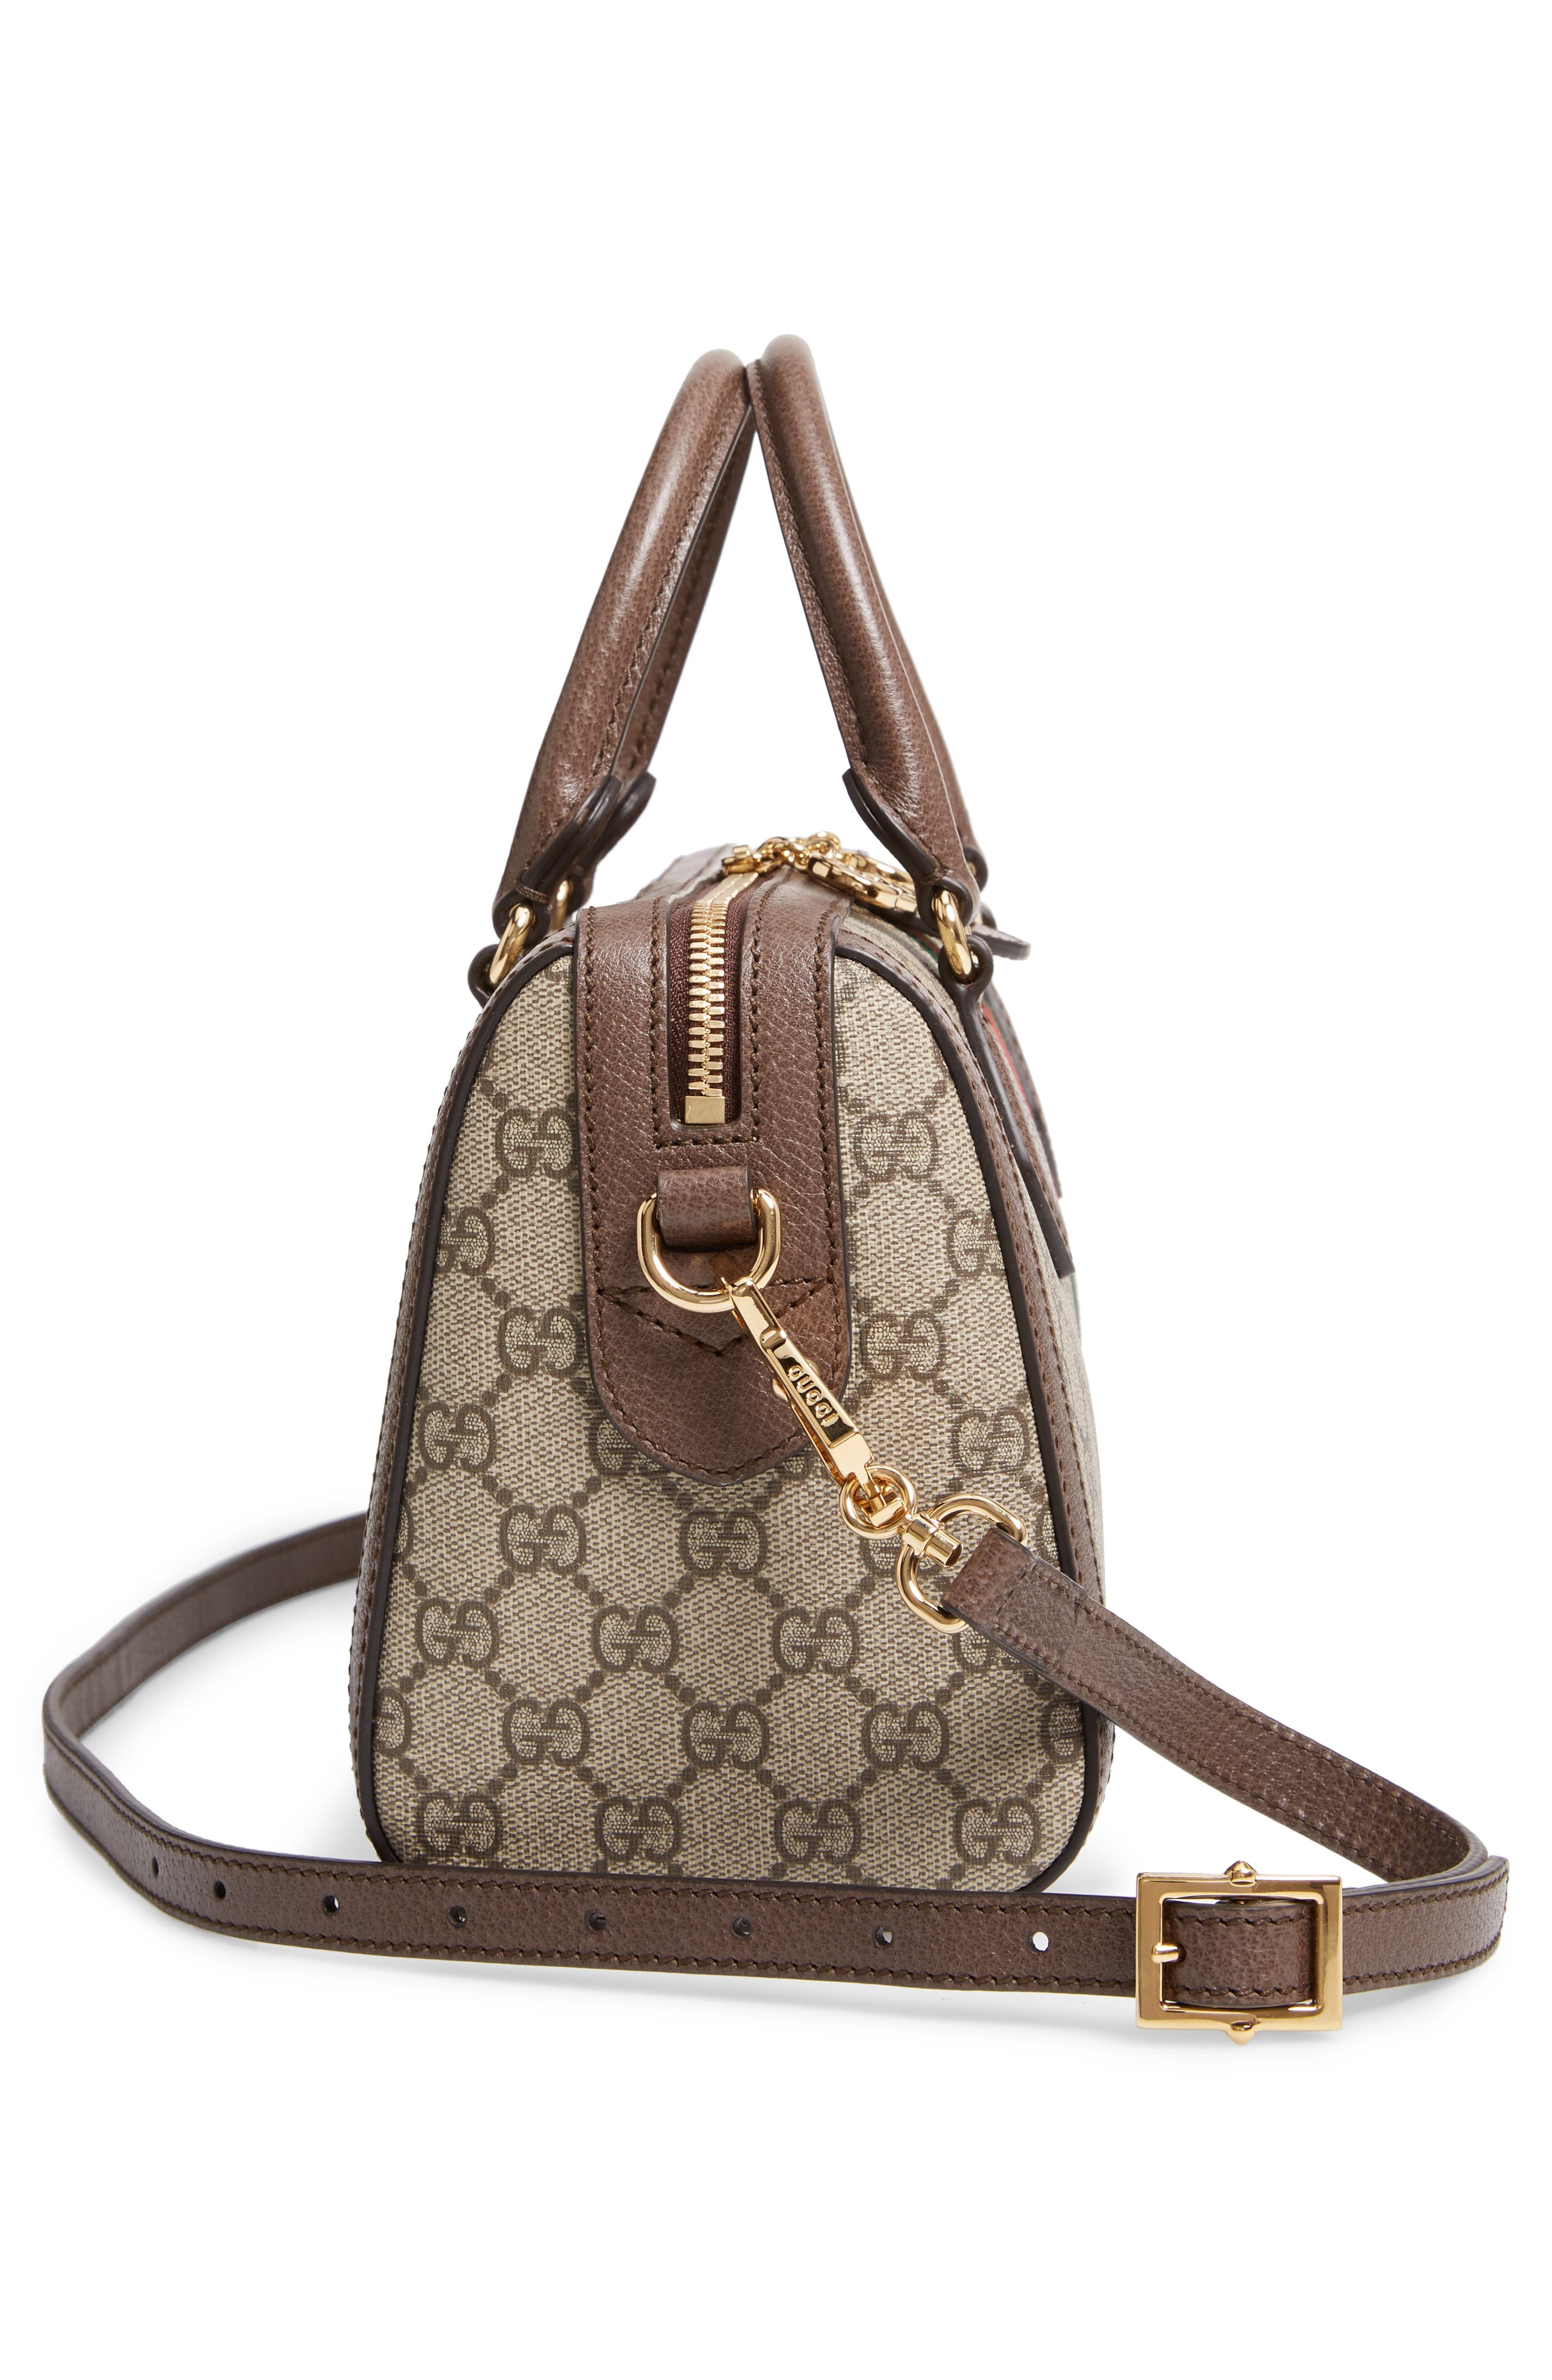 GUCCI, Ophidia GG Supreme Canvas Top Handle Bag, Alternate thumbnail 5, color, BEIGE EBONY/ ACERO/ VERT RED